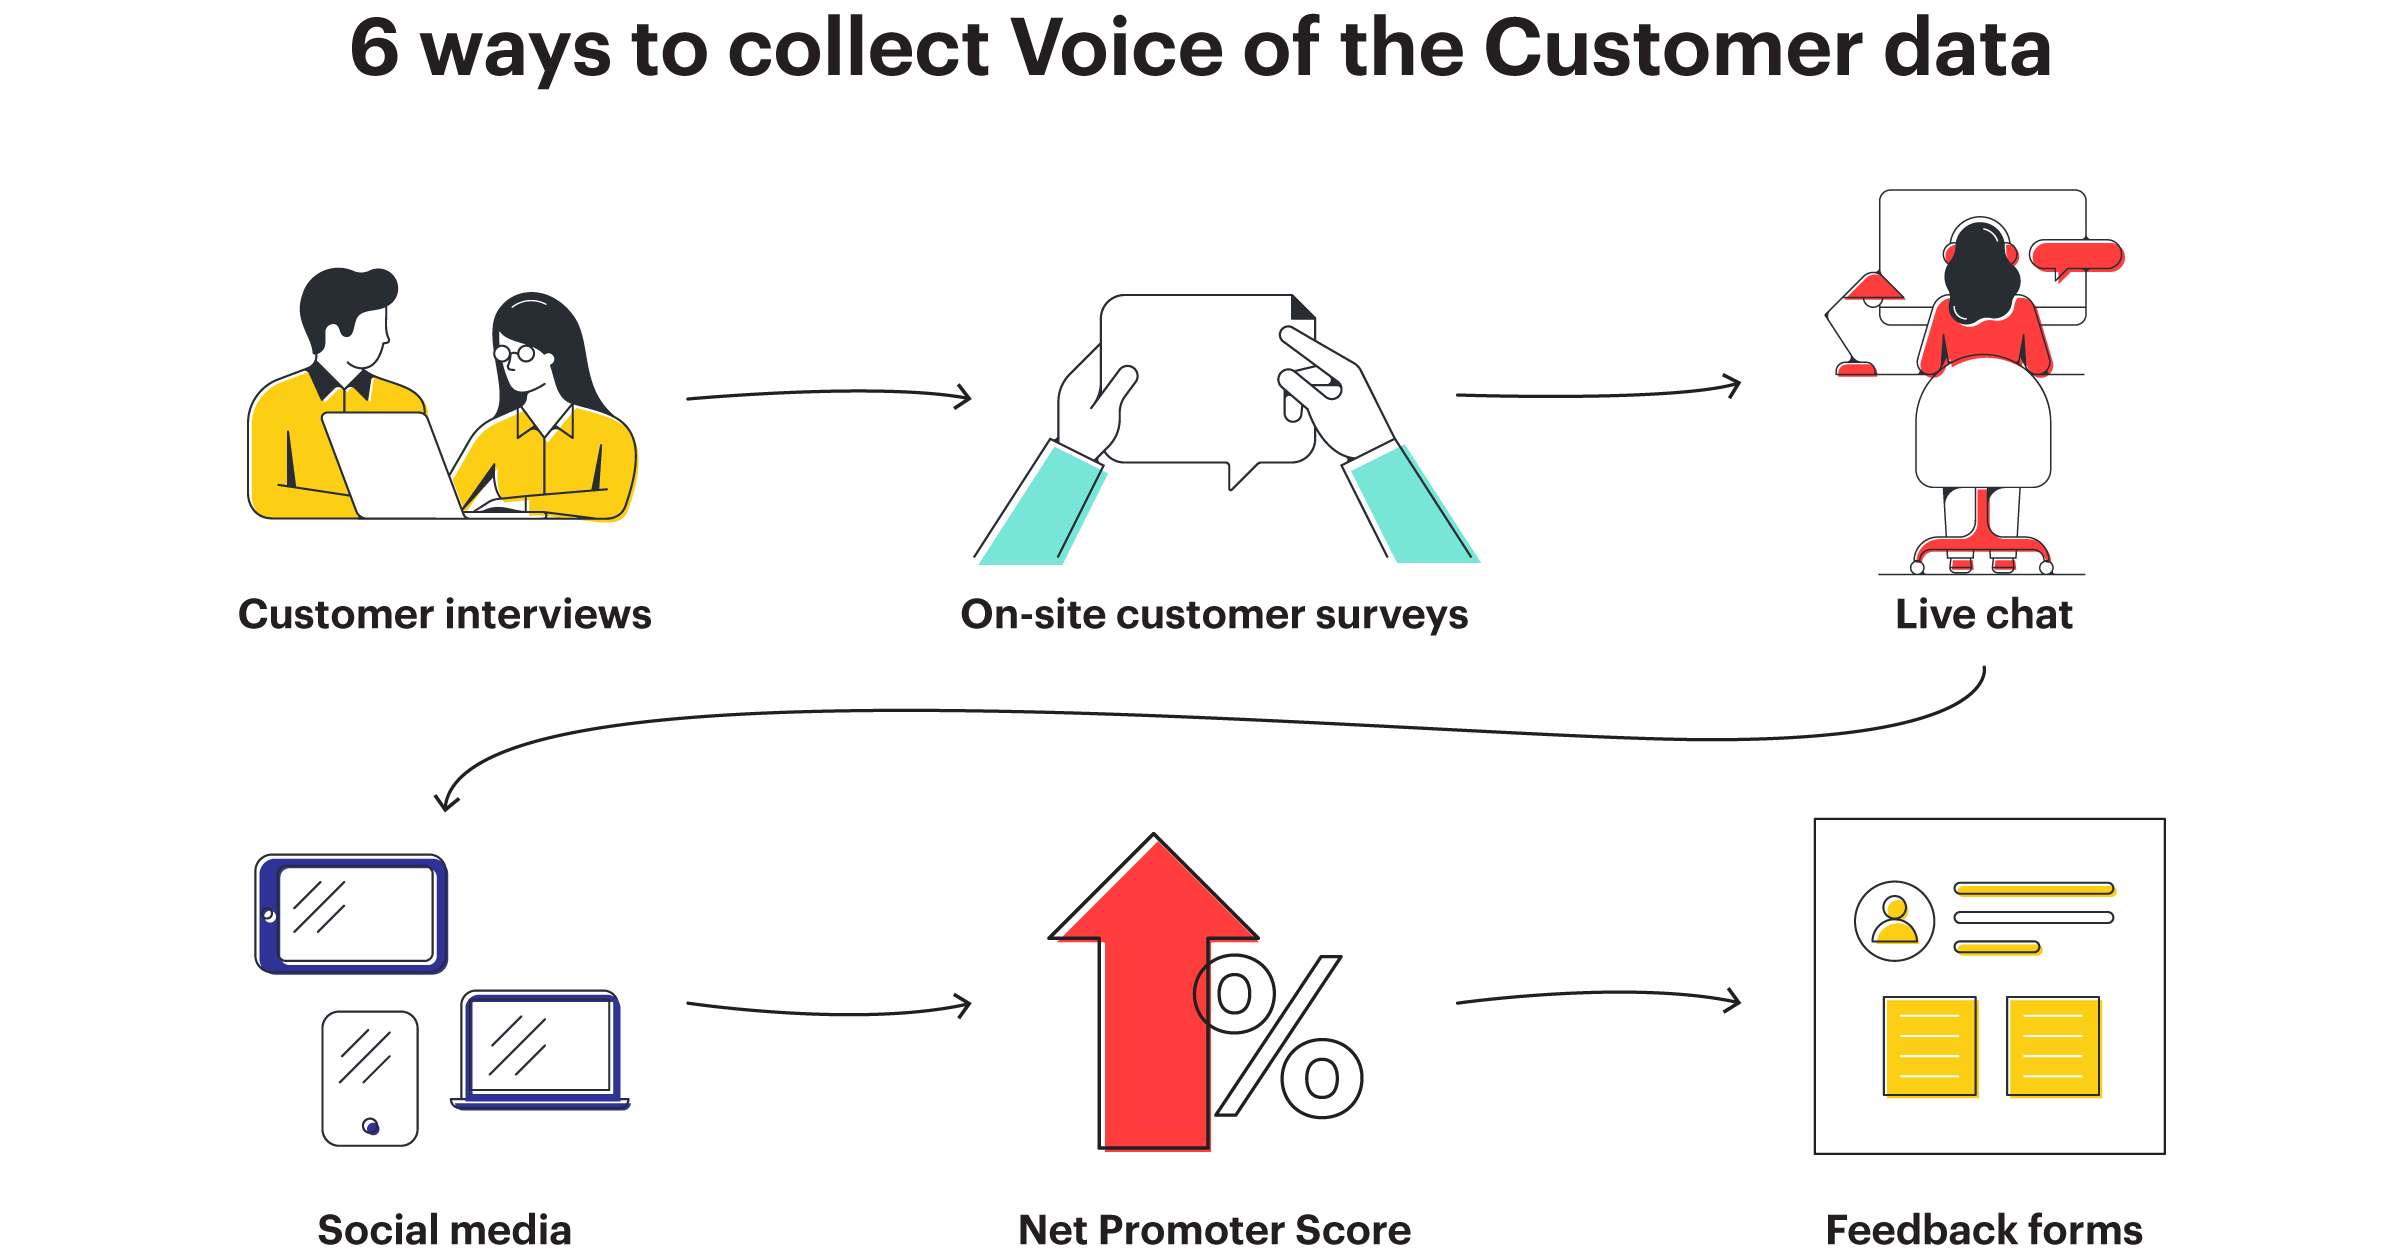 Ways to collect the Voice of the Customer